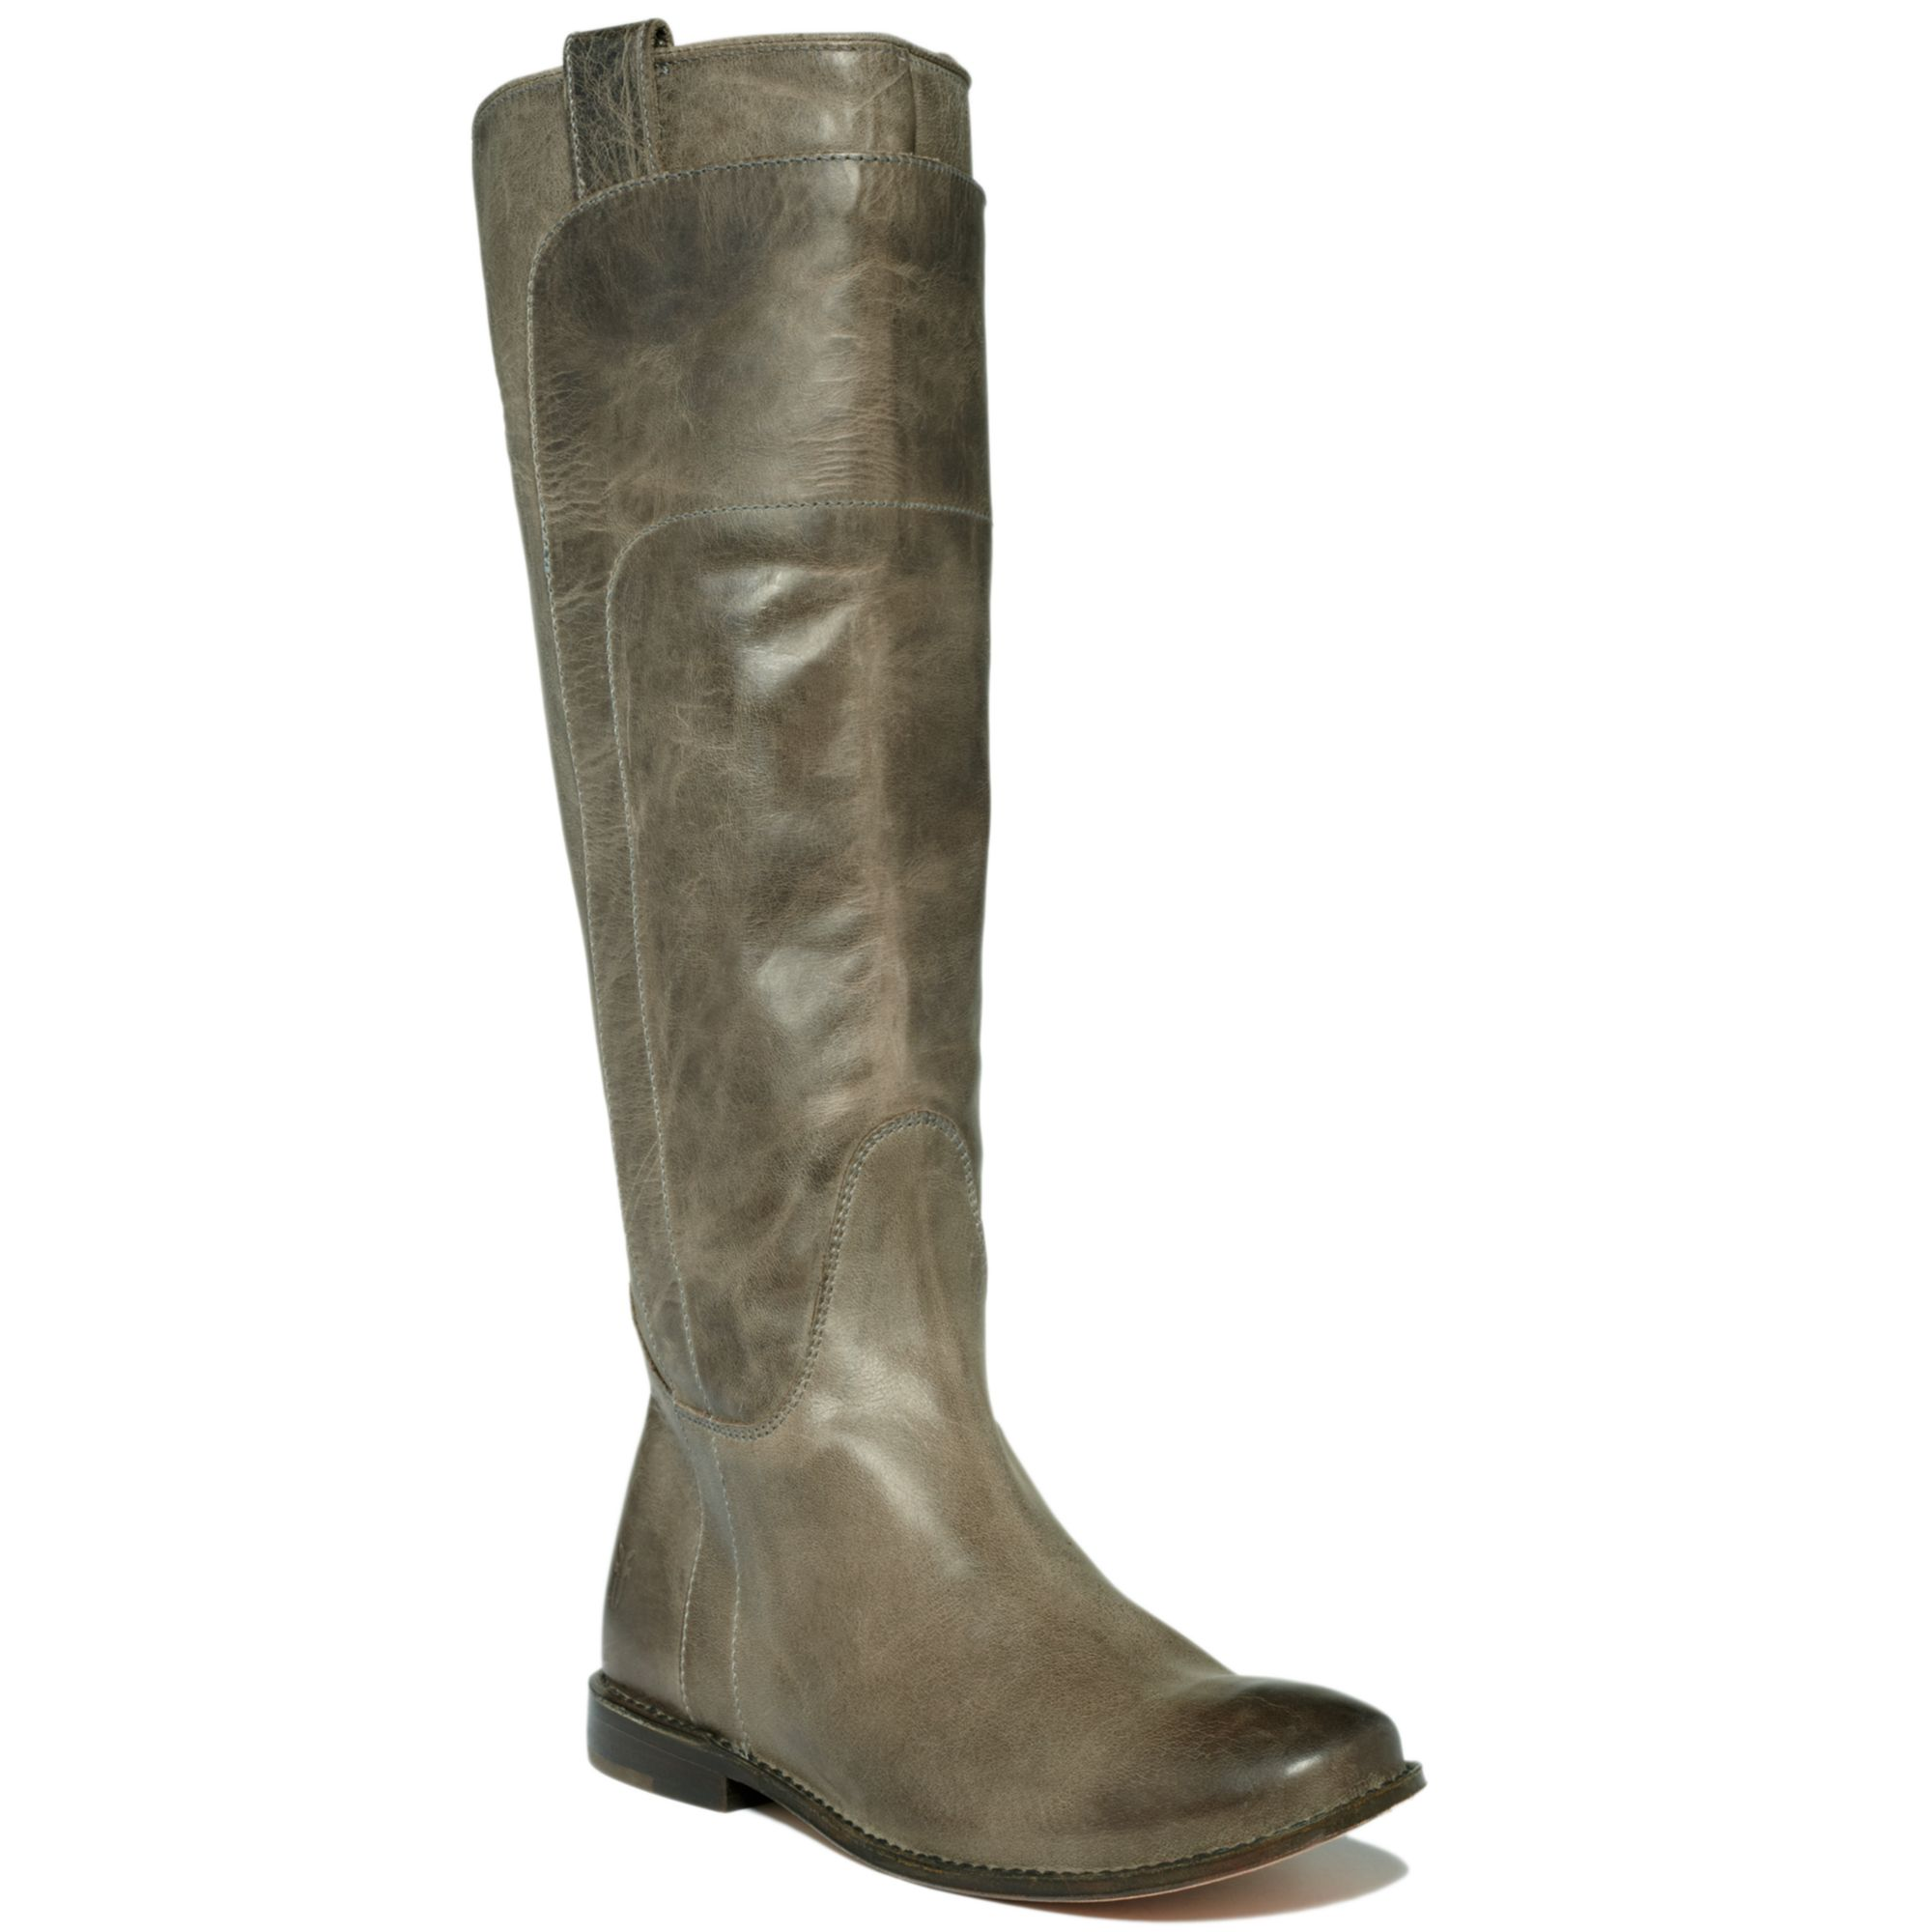 Frye Paige Tall Riding Boots in Green (grey) | Lyst